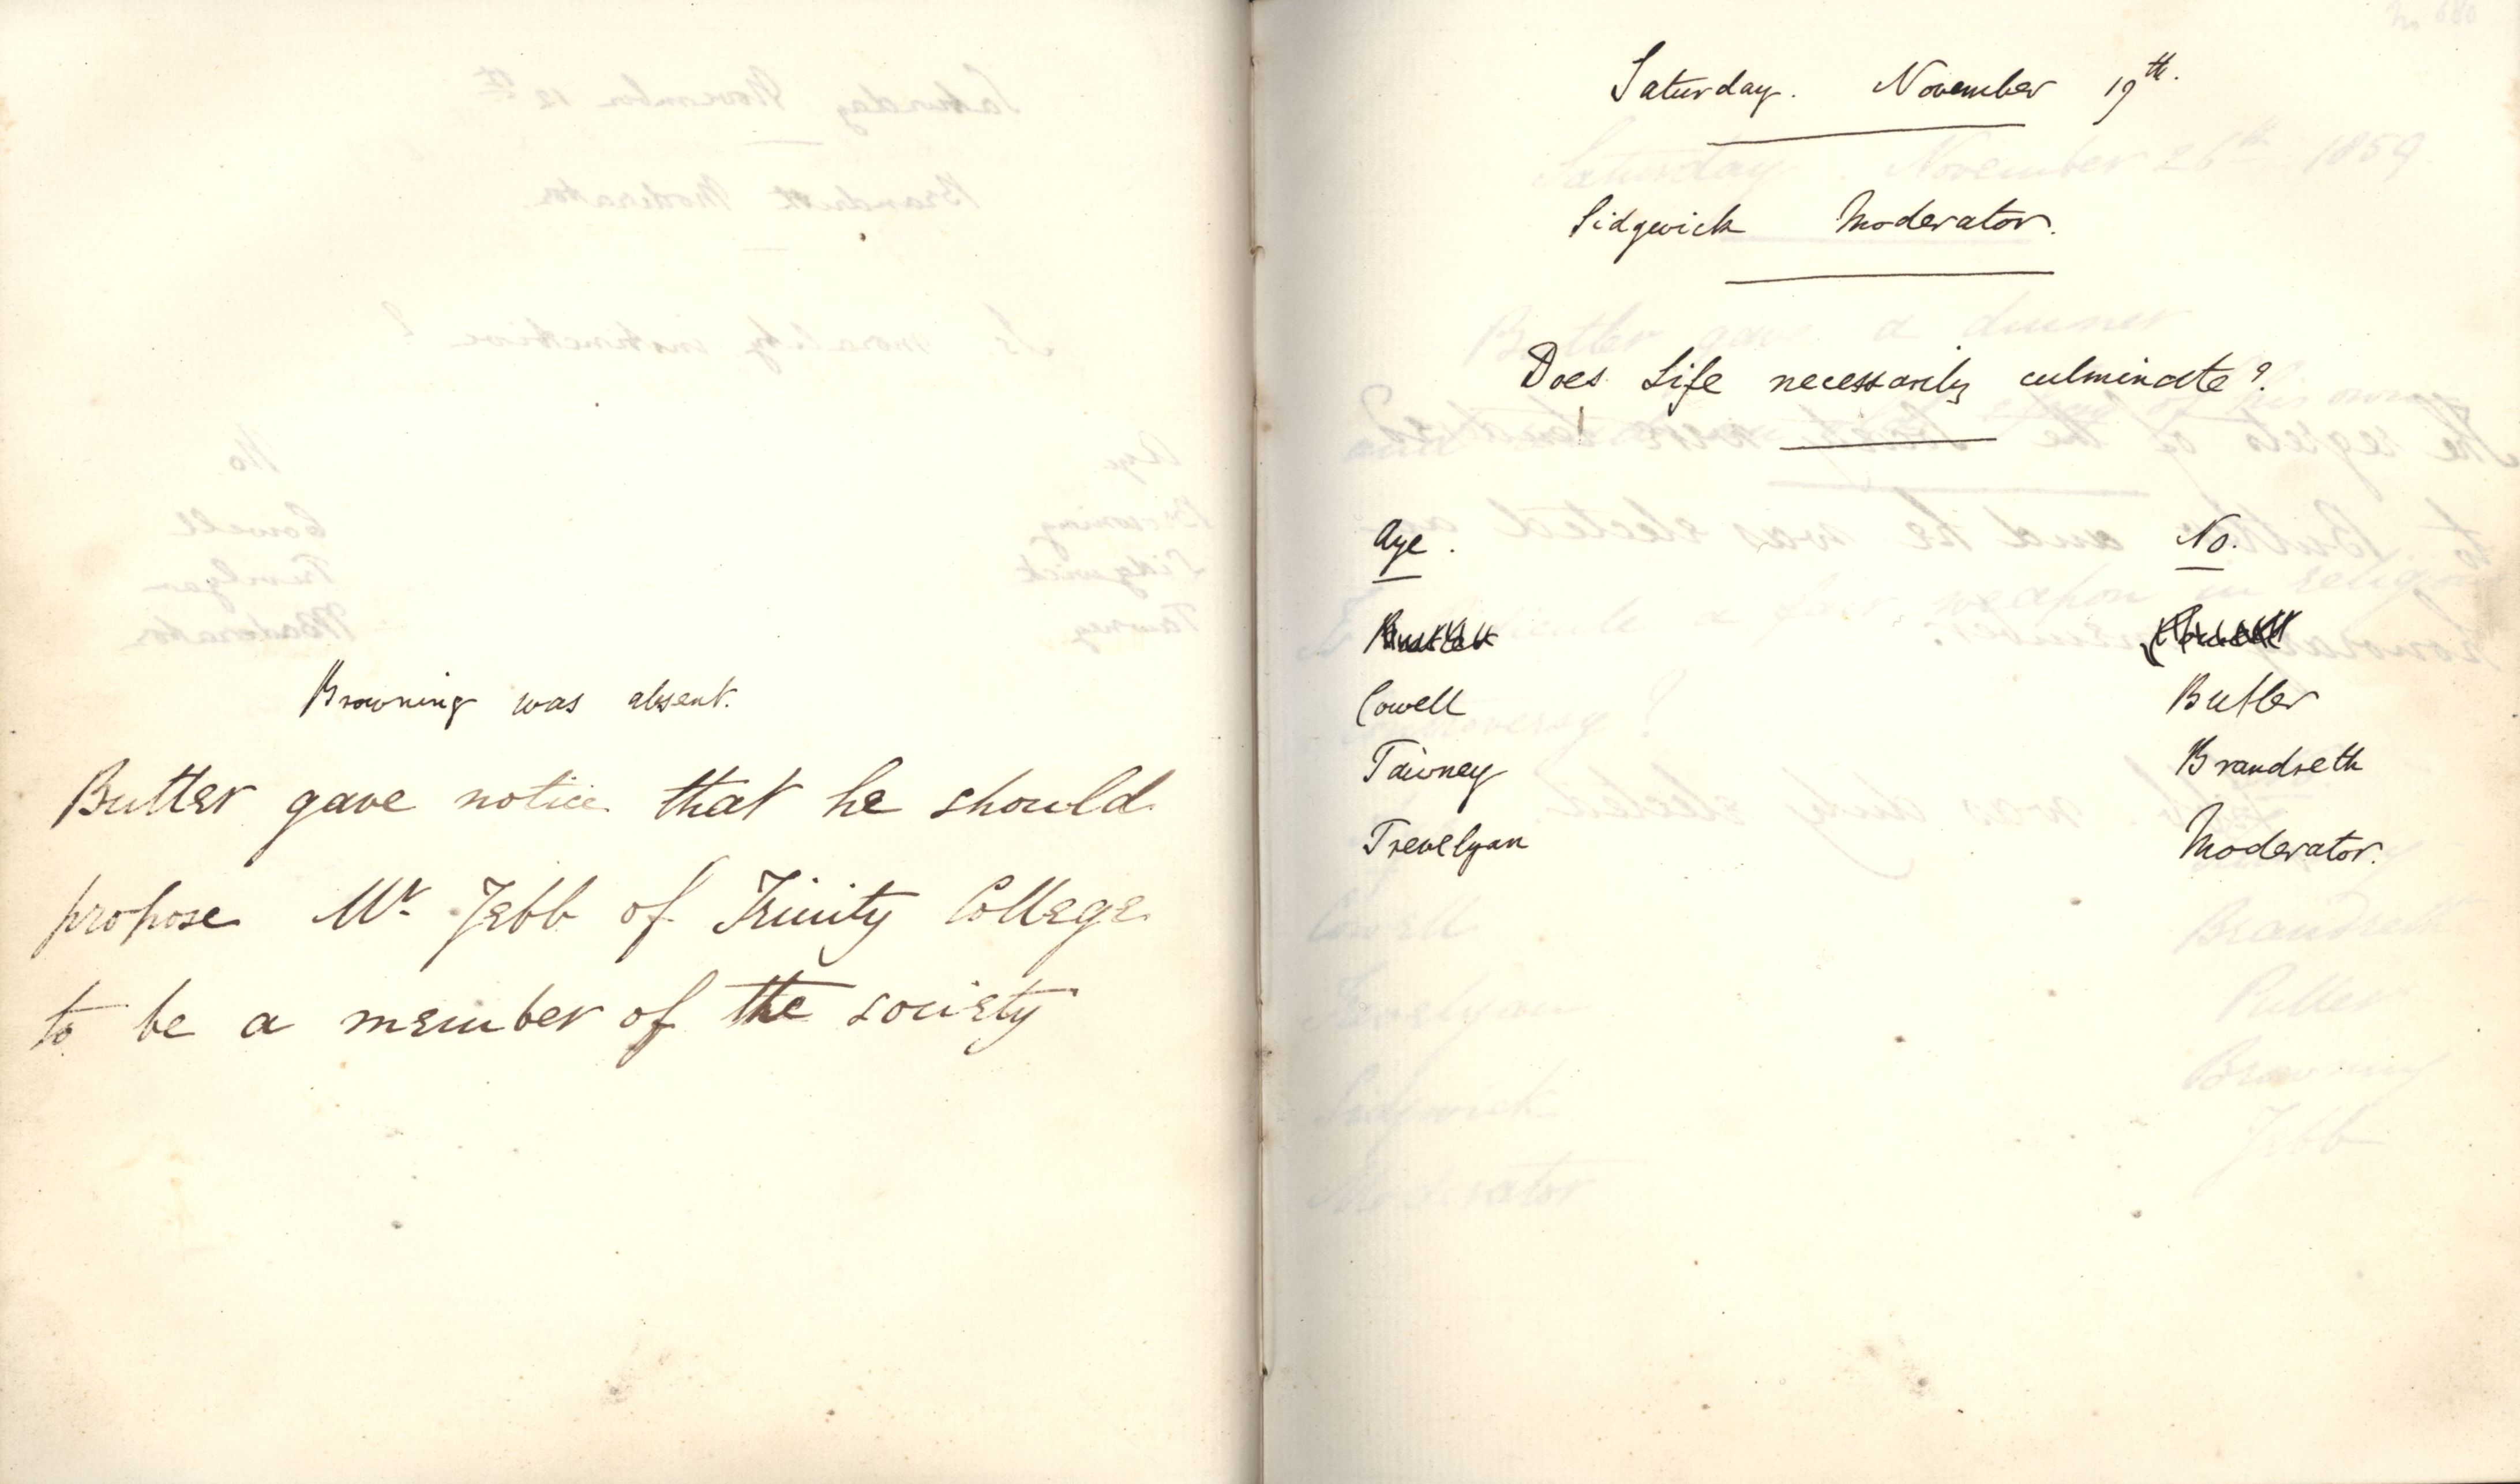 Minutes of a meeting in which Oscar Browning is noted as having been absent. [KCAS/39/1/5, 19 November 1859]